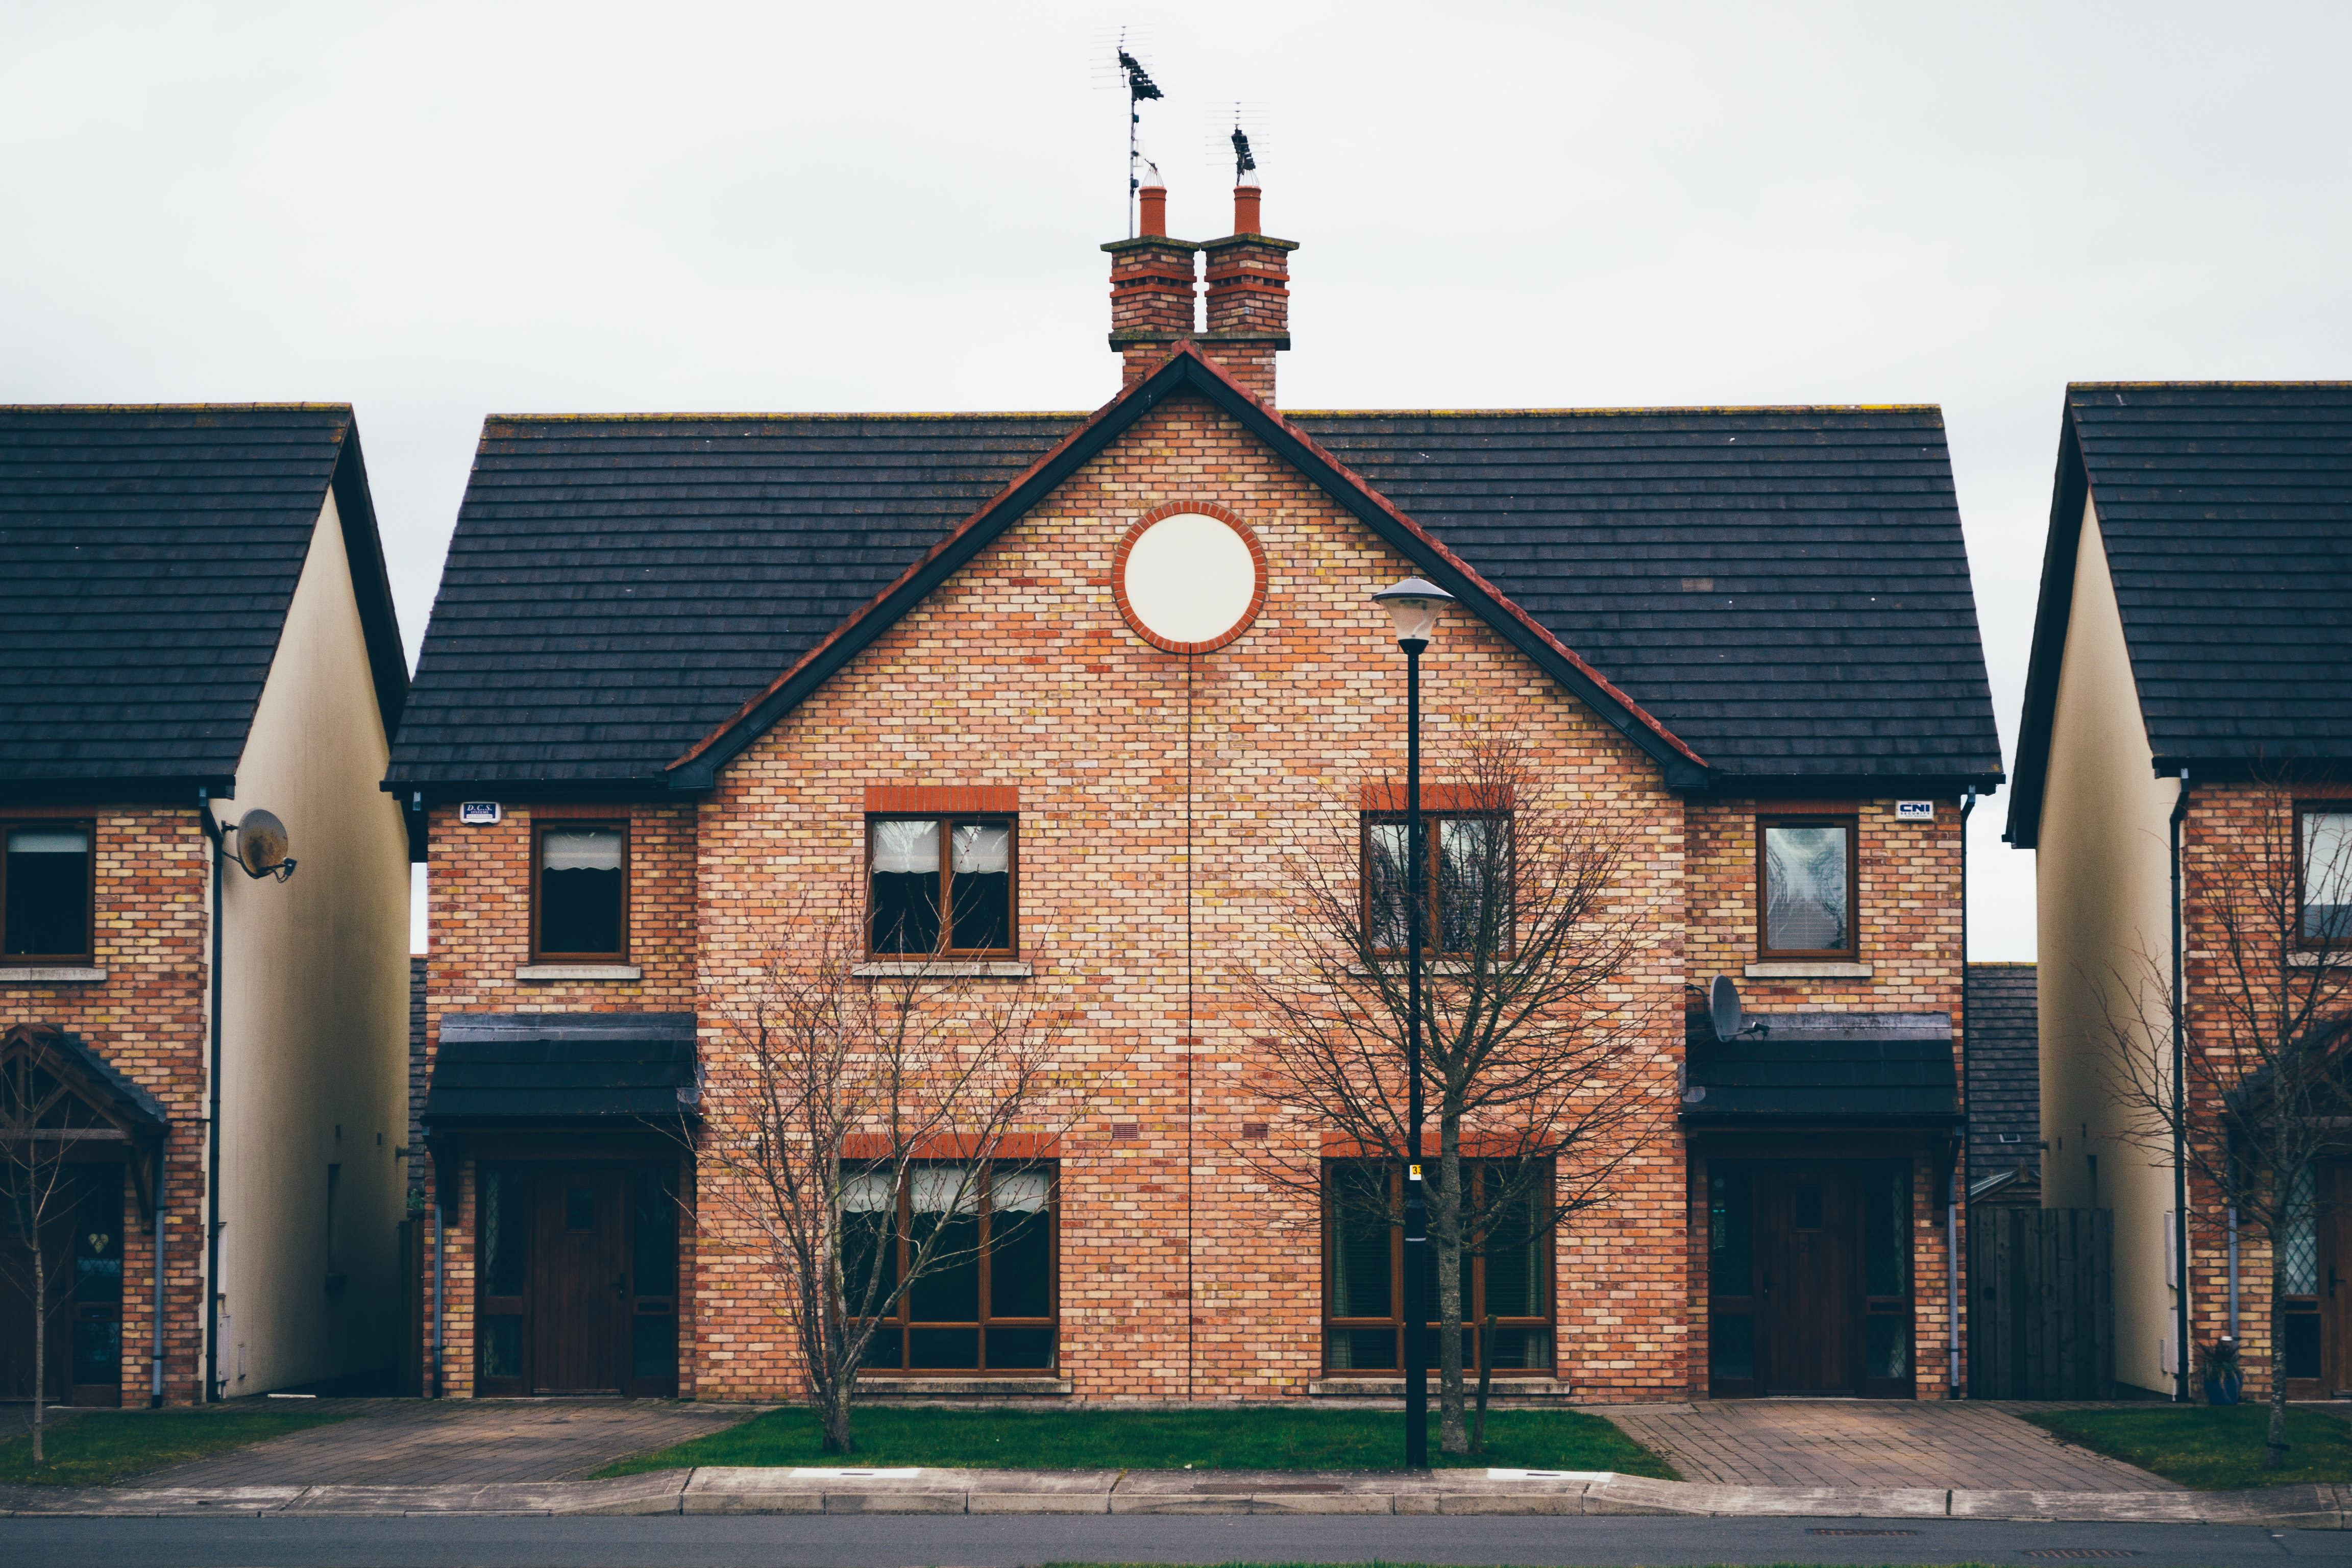 House Pictures Download Free Images on Unsplash